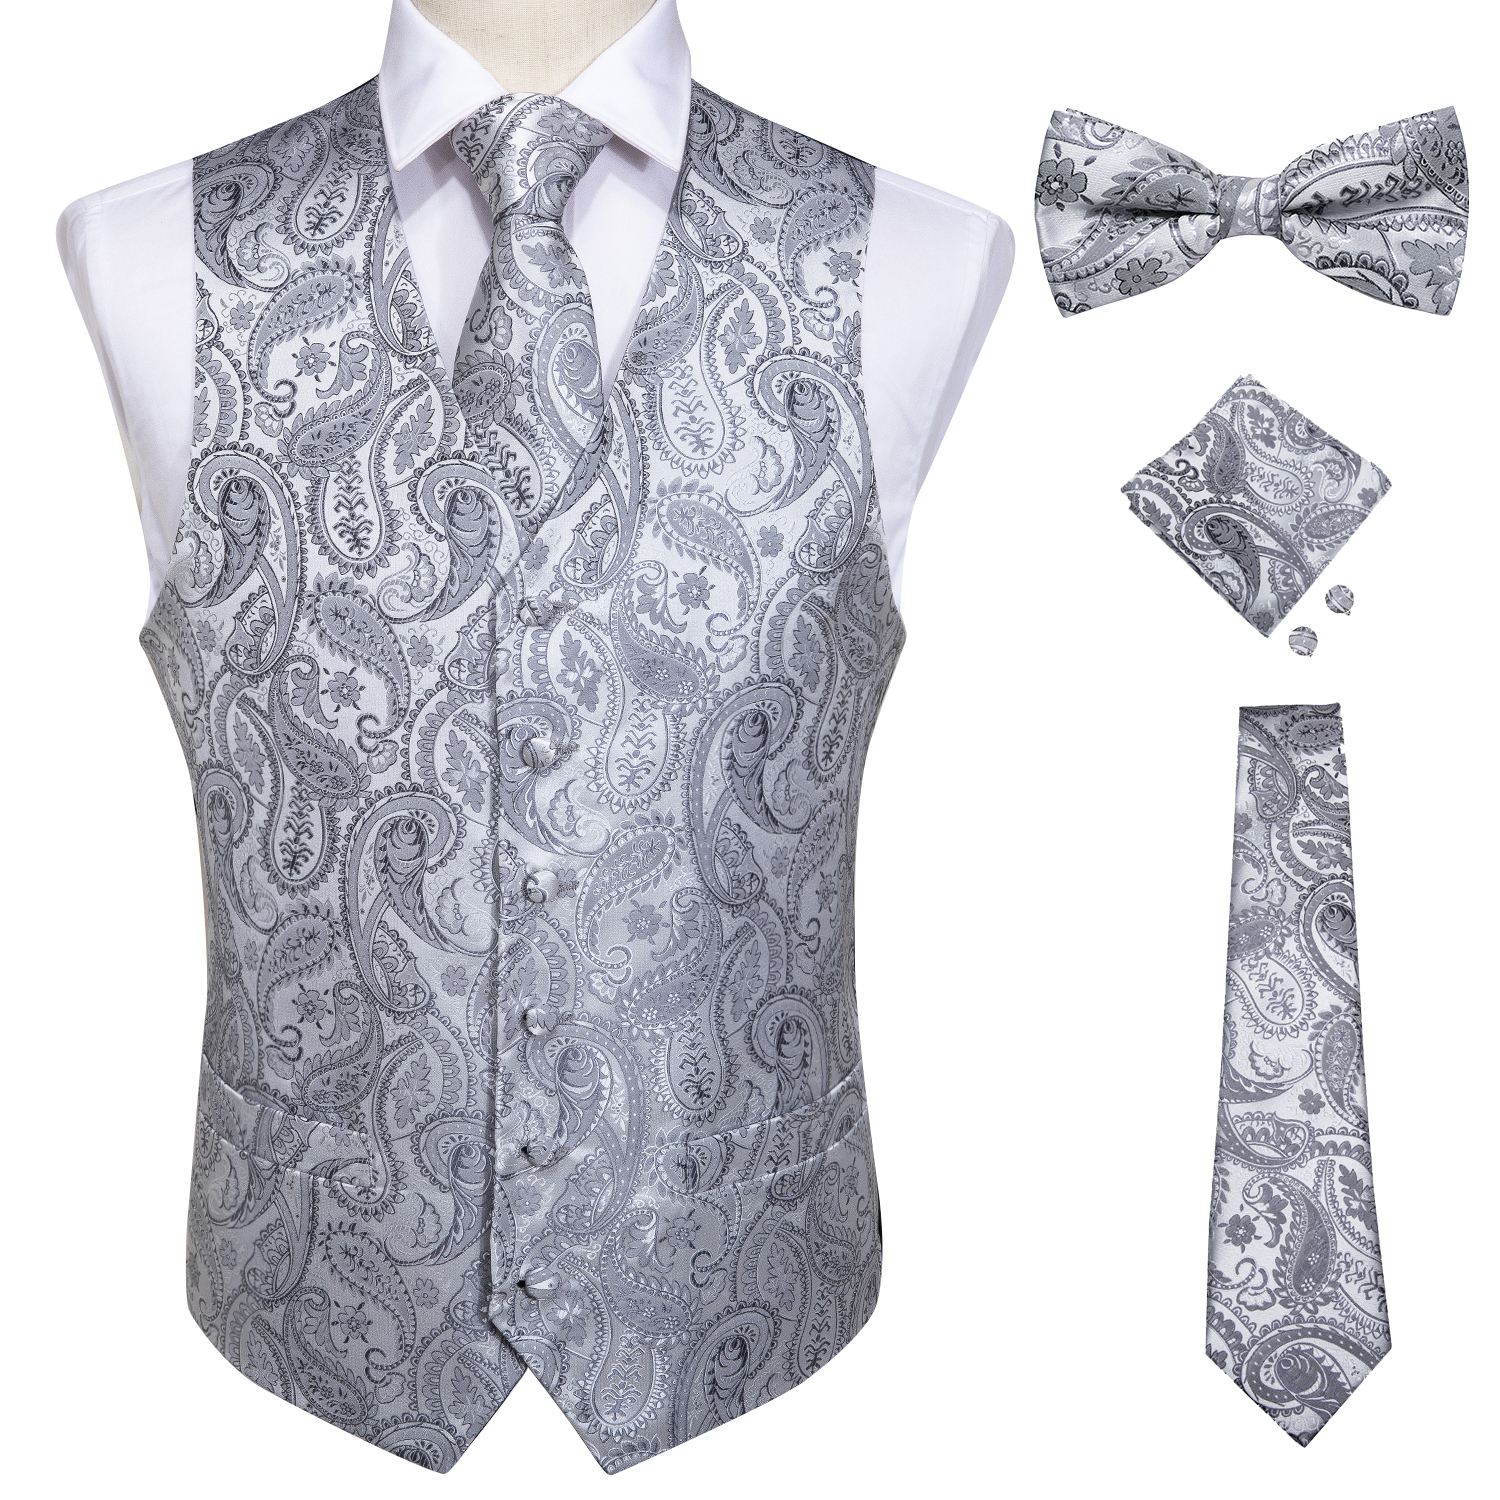 Mens Classic Silver Paisley Folral Silk Waistcoat Vests Wedding Handkerchief Necktie Suit Vest Set Sleeveless Jacket DiBanGu